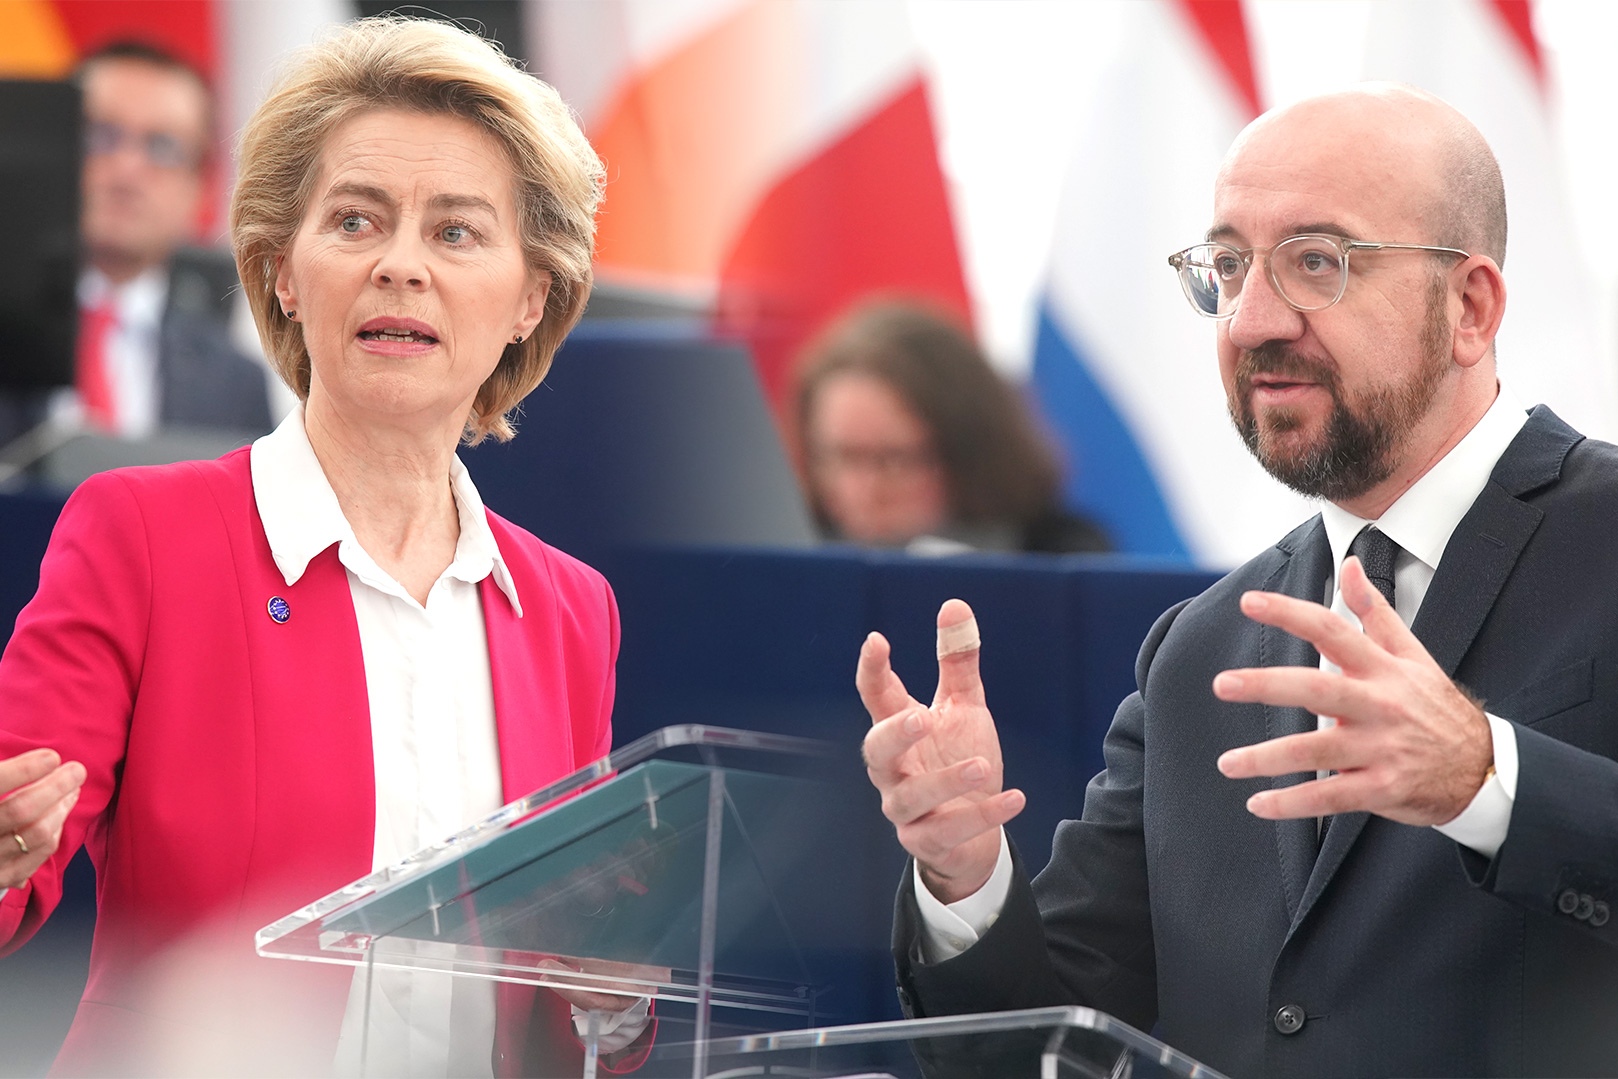 MEPs welcome EU summit climate goals but criticise lack of budget ambition 49239057392